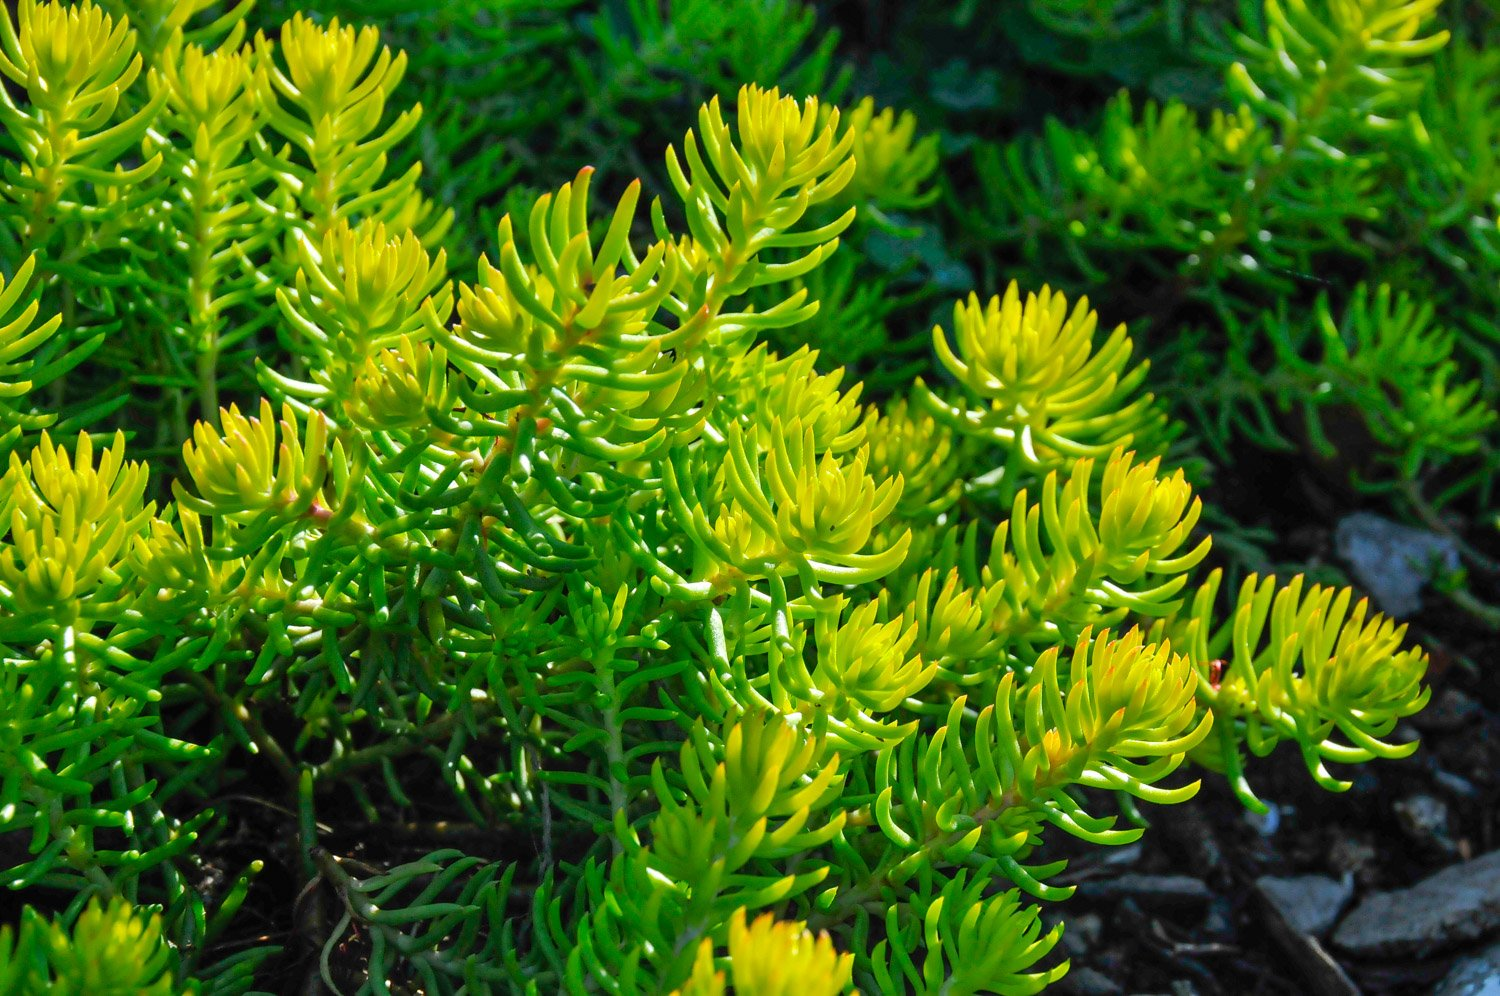 Sturdy little stems of Sedum 'Angelina' are yellow-green in the sun